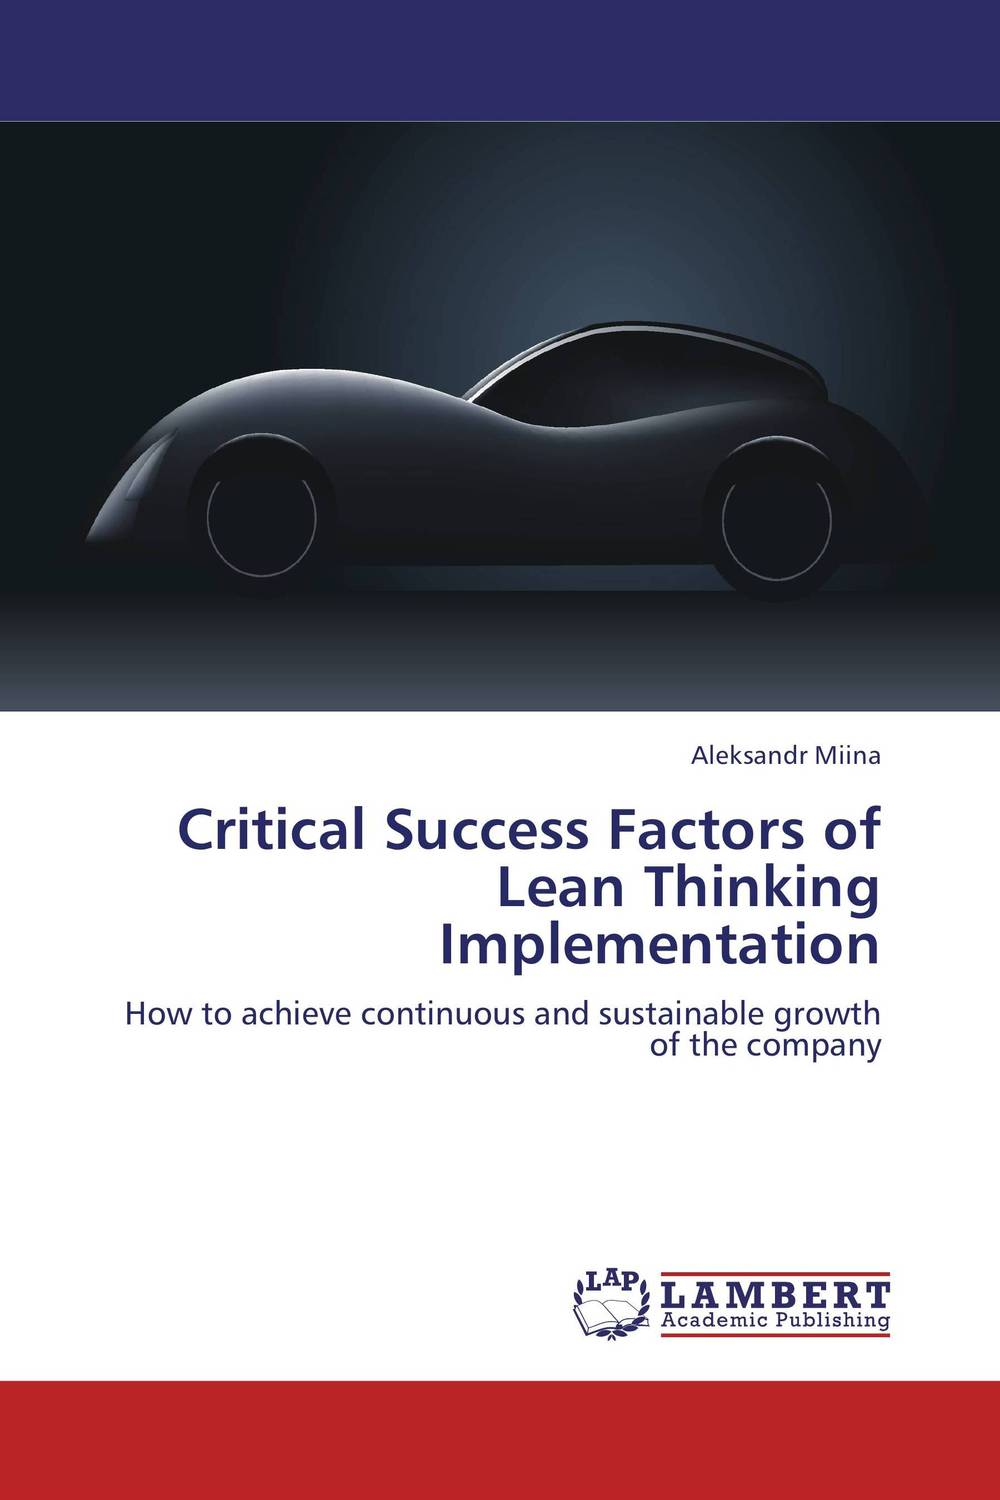 Critical Success Factors of Lean Thinking Implementation madmilk